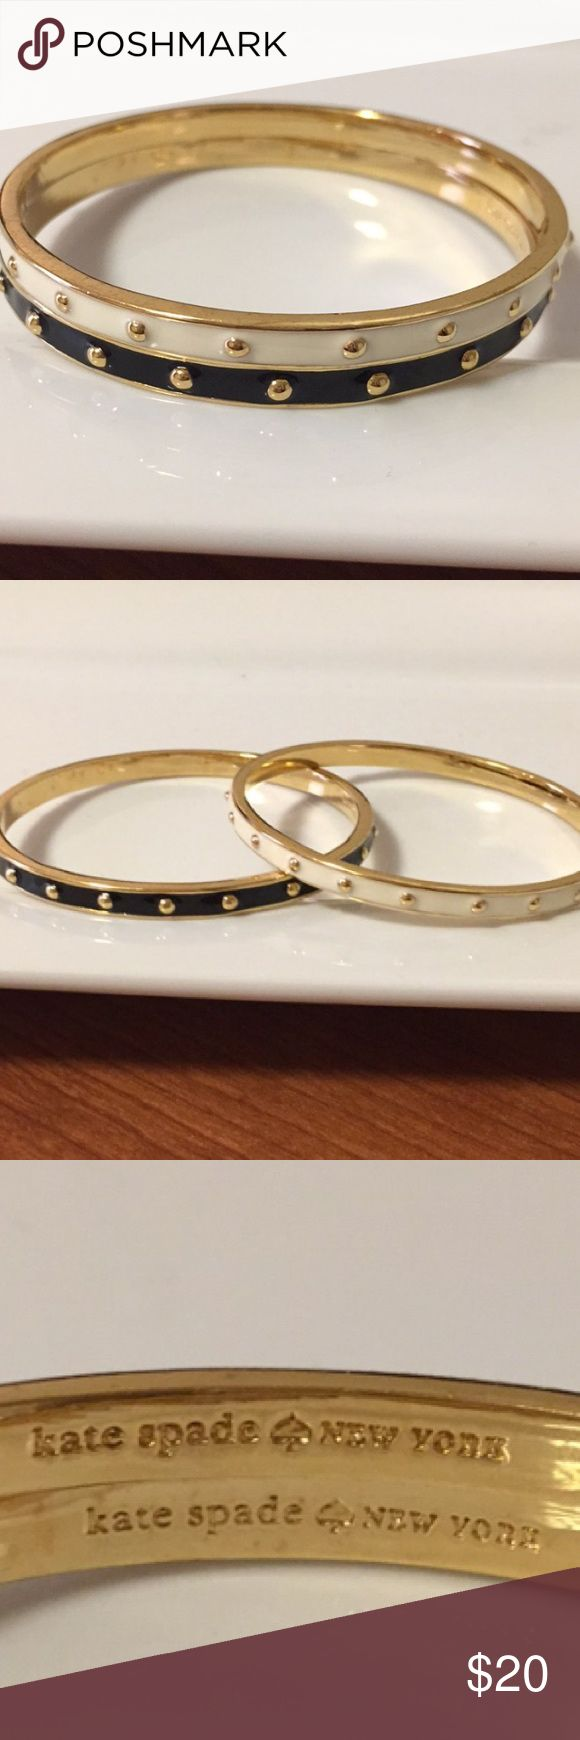 2 Kate Spade Bangles One black and one Kate Spade Bangle. Adds the perfect touch to many outfits! kate spade Jewelry Bracelets